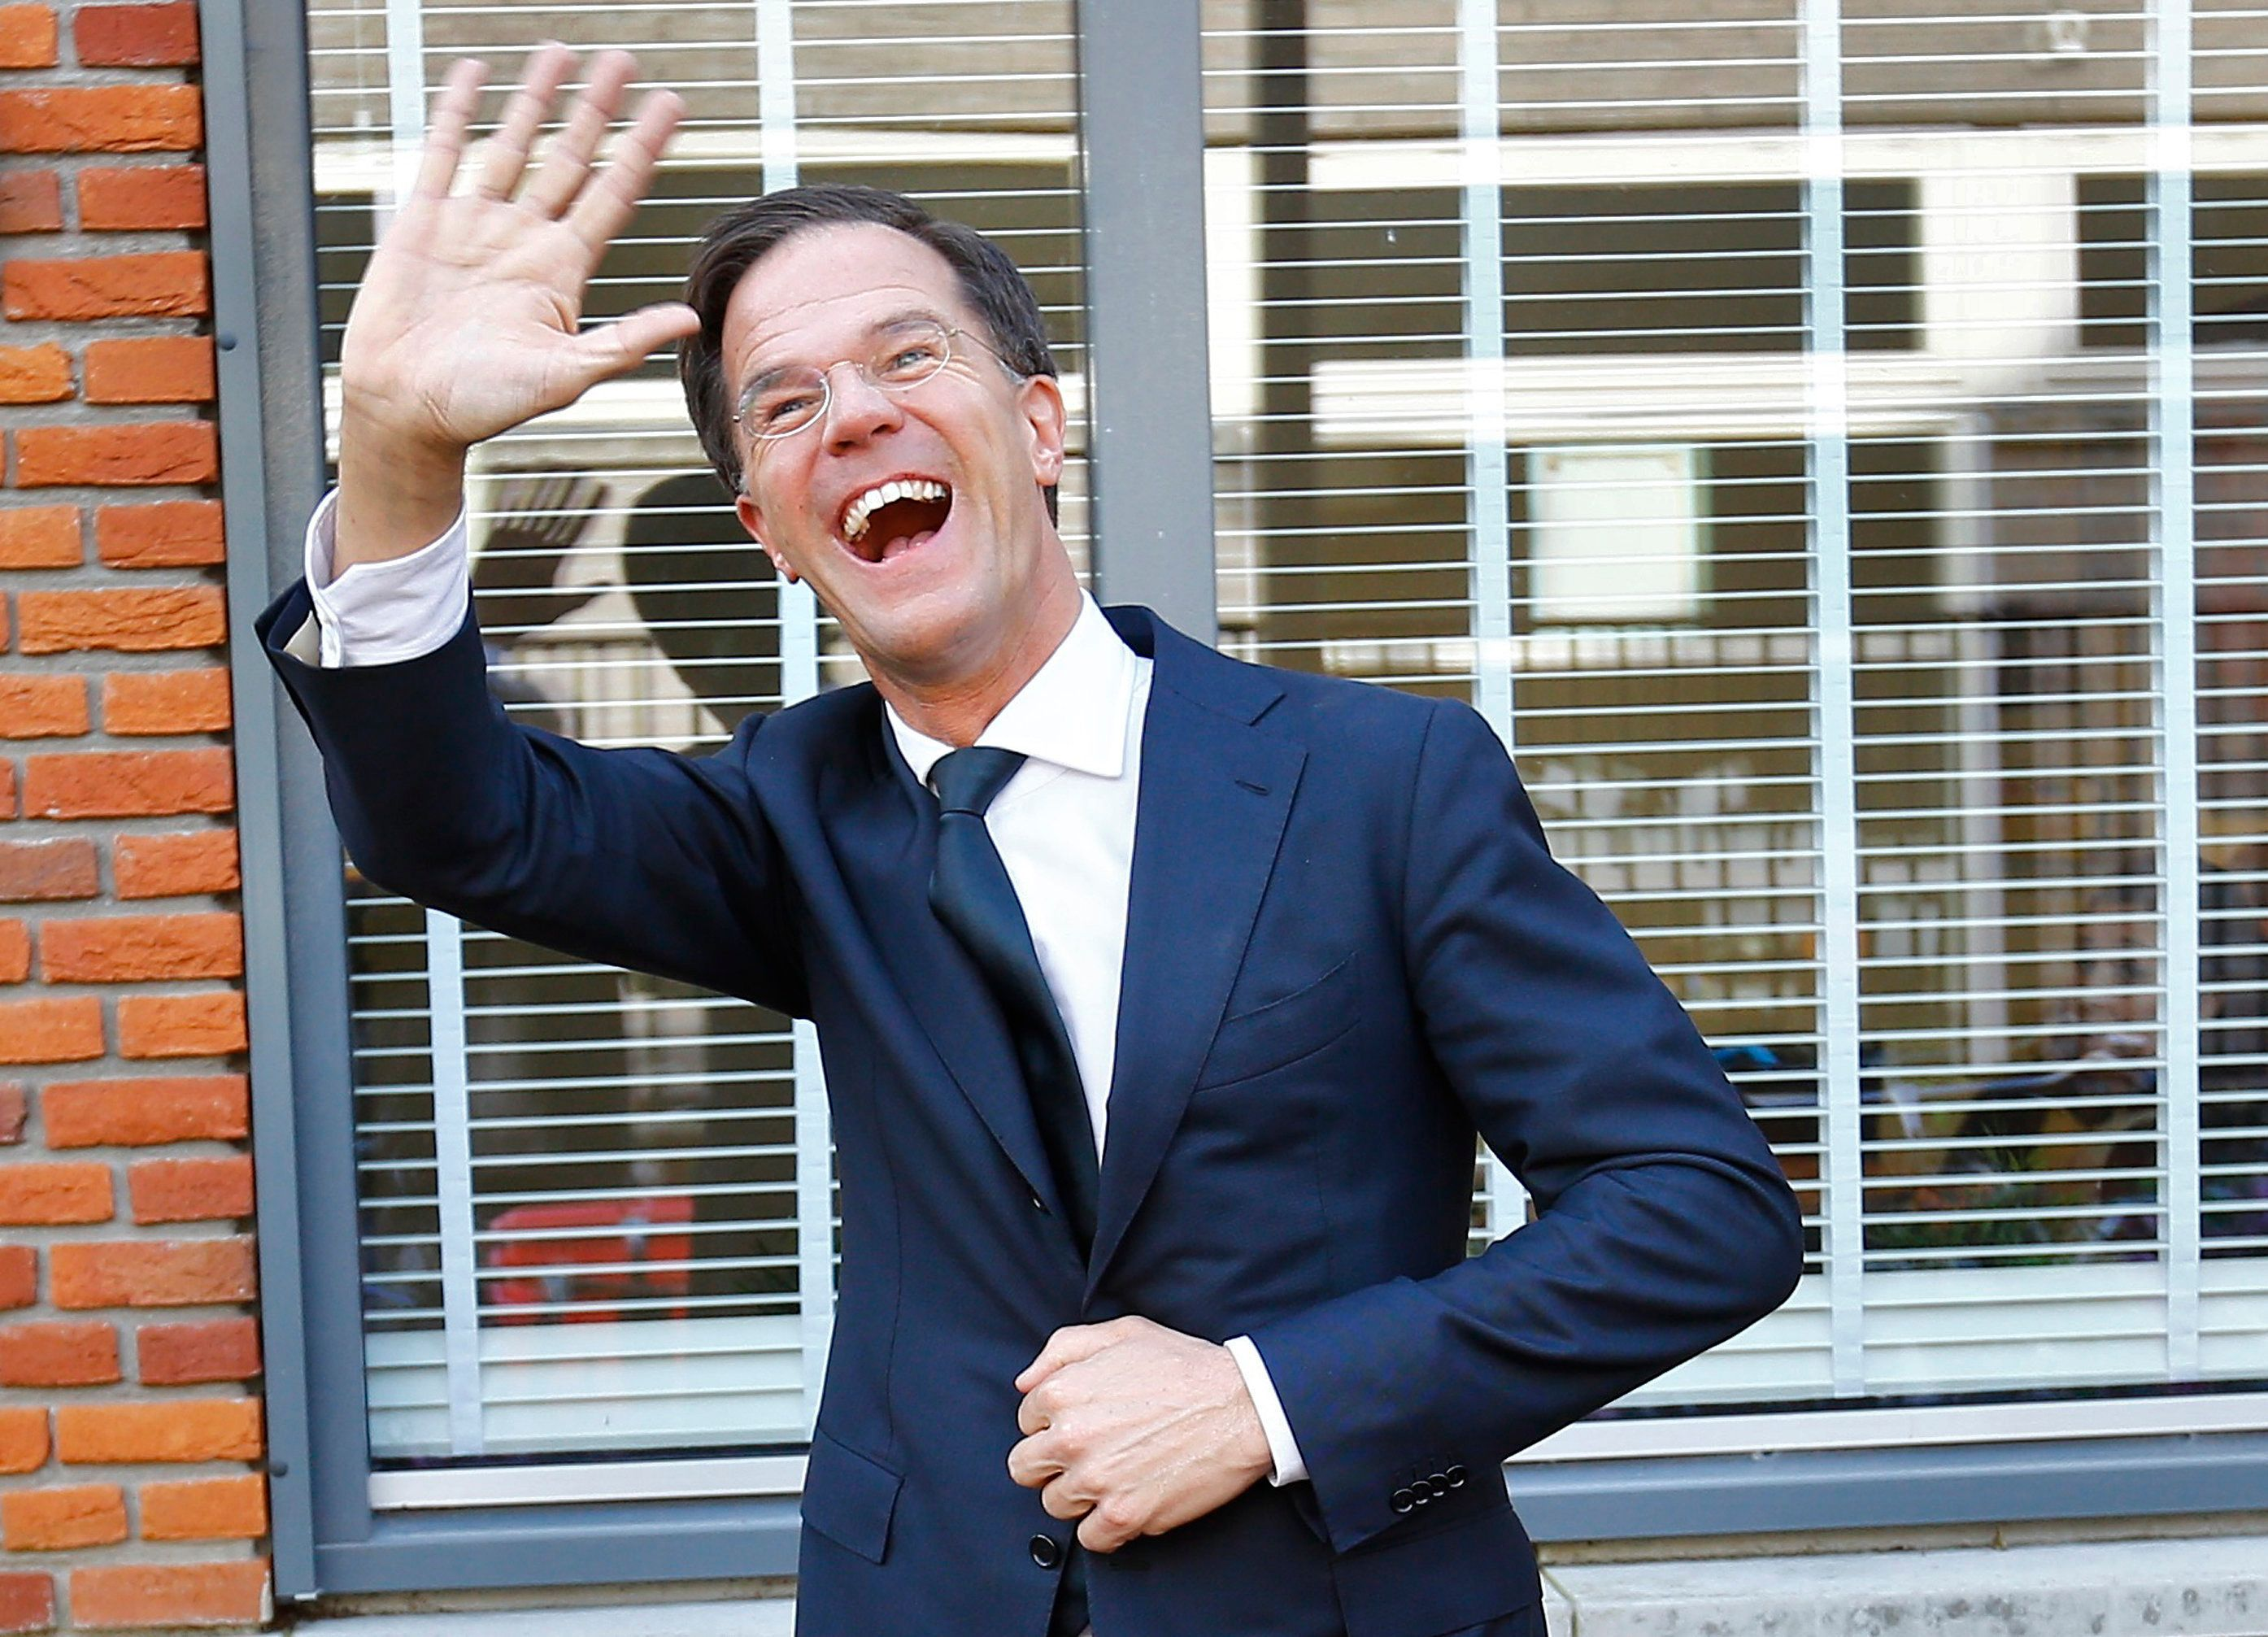 Dutch Prime Minister Mark Rutte of the VVD party waves after voting in the general election in The Hague, Netherlands, March 15, 2017.      REUTERS/Michael Kooren        TPX IMAGES OF THE DAY